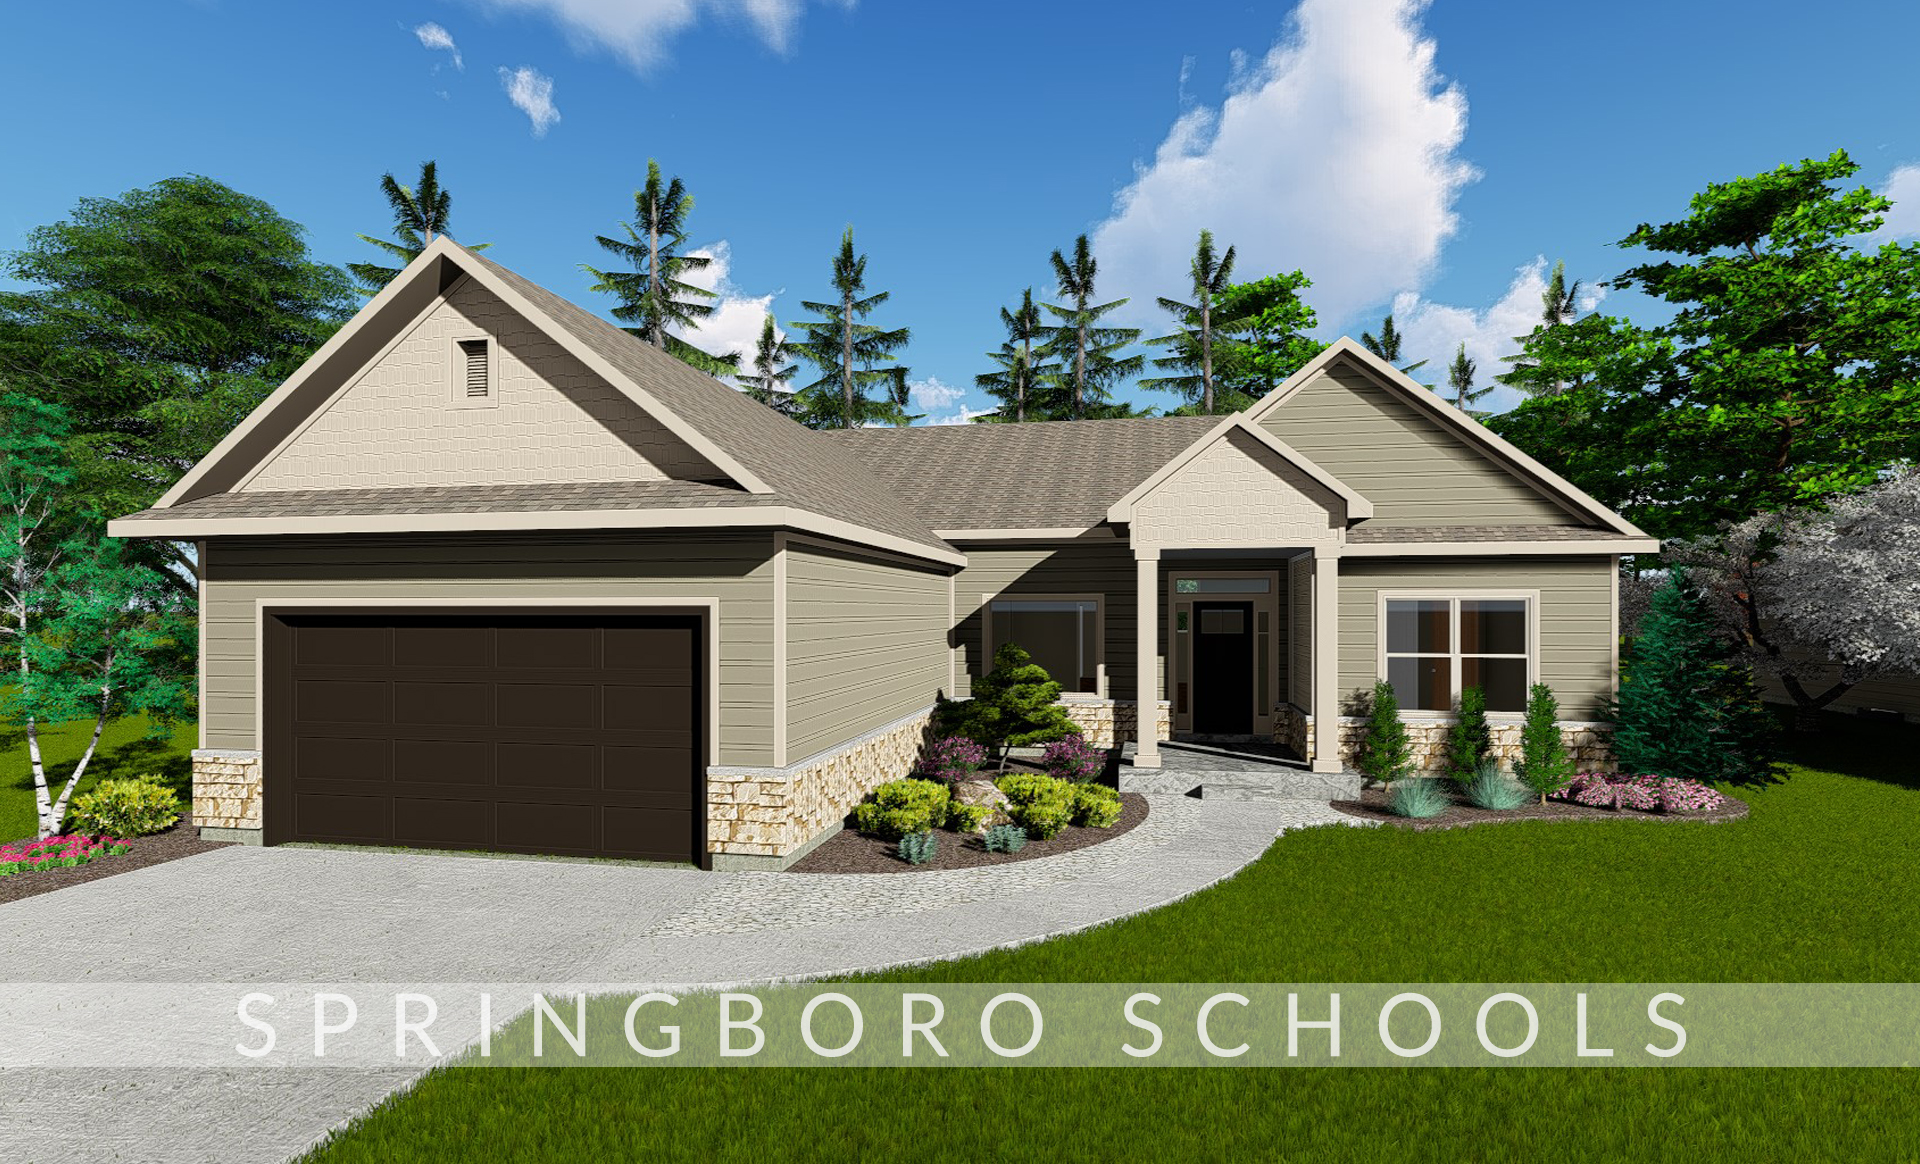 Soraya farms the oakwood lot 101 design homes The oakwood